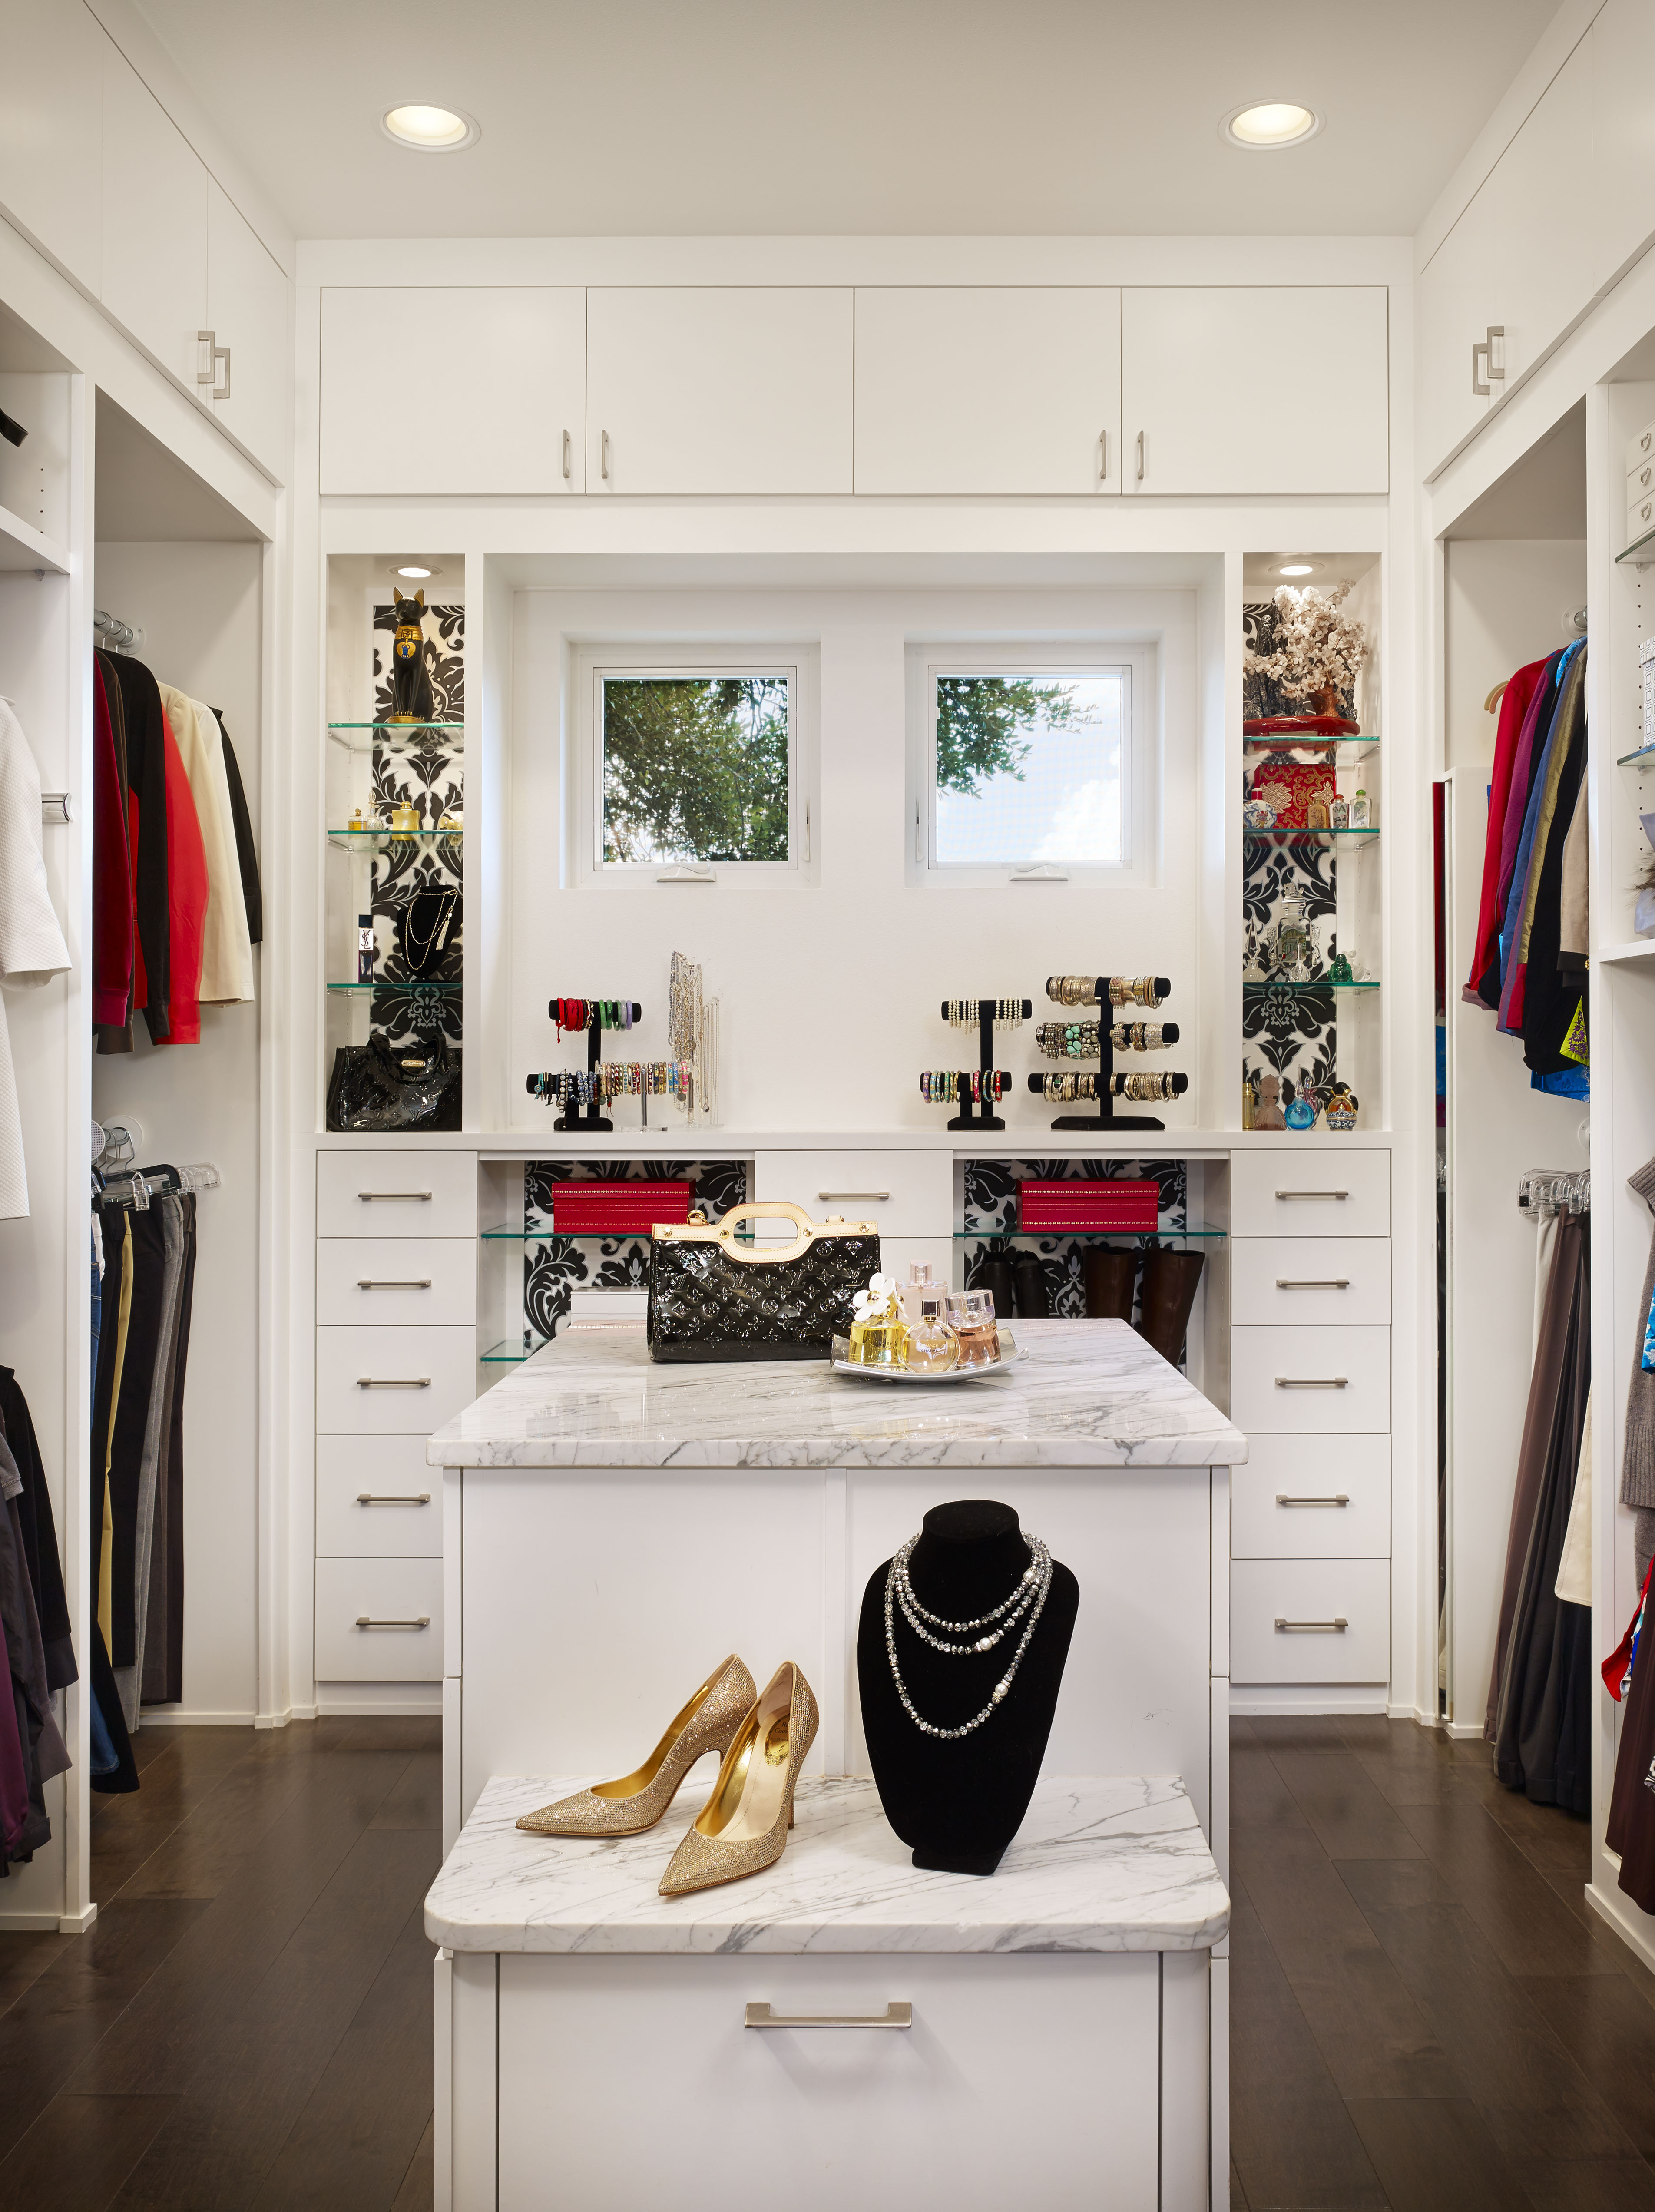 Mirrors archives spaces designed interior design studio for Walk in wardrobe closet